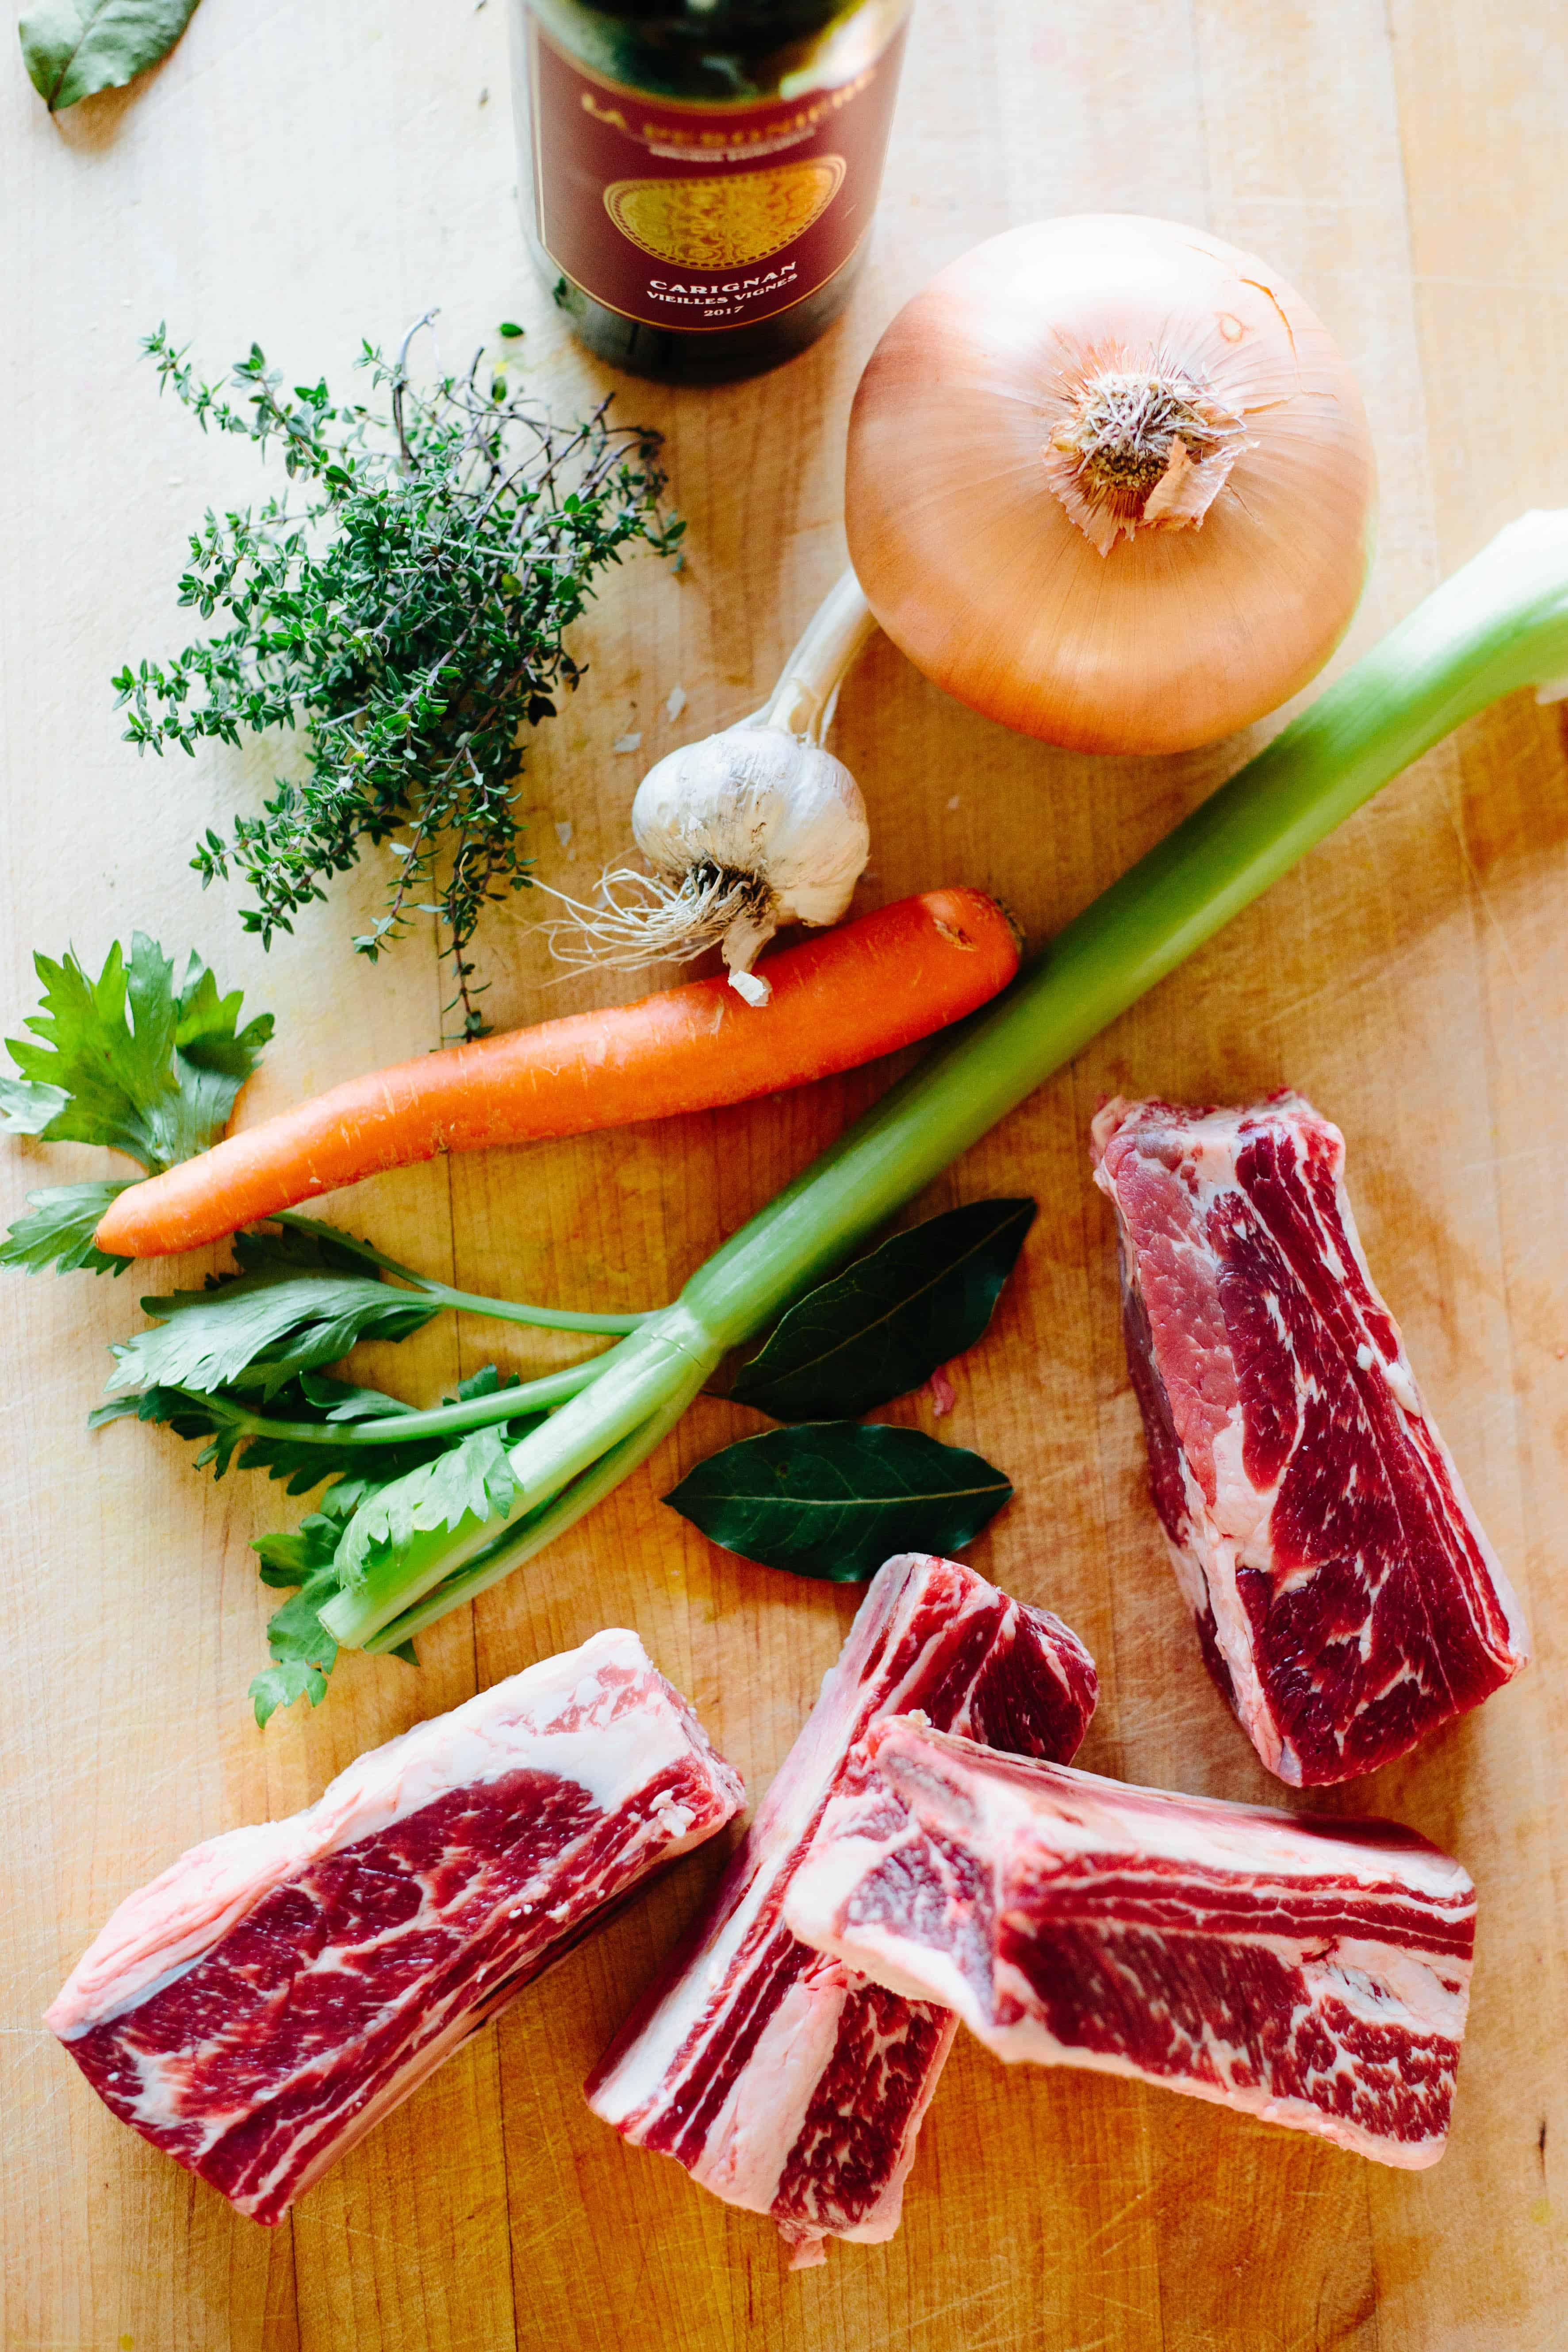 Raw ingredients for braised short ribs